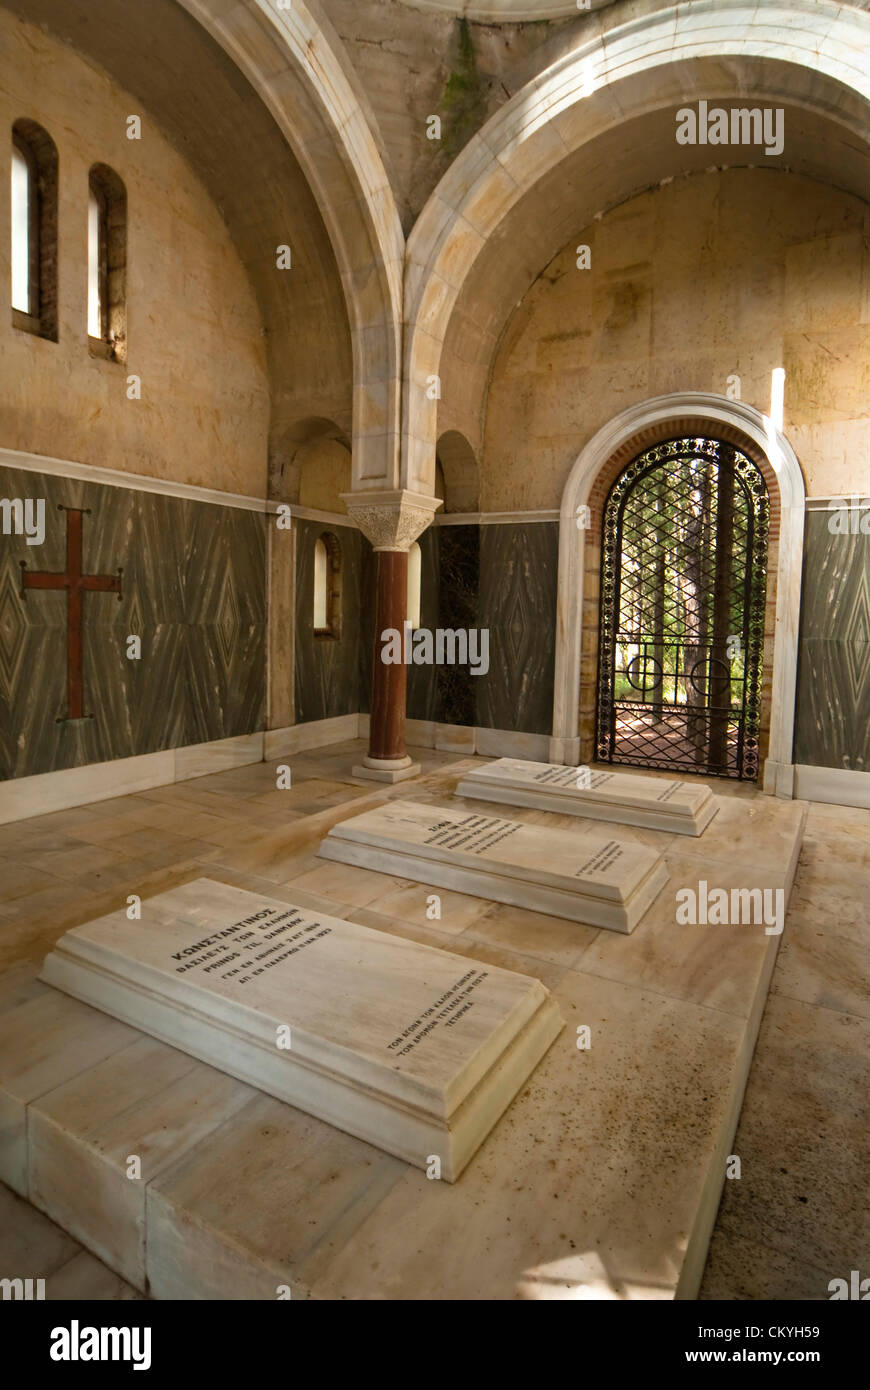 Tatoi Grave In The Mausoleum From Left To Right King